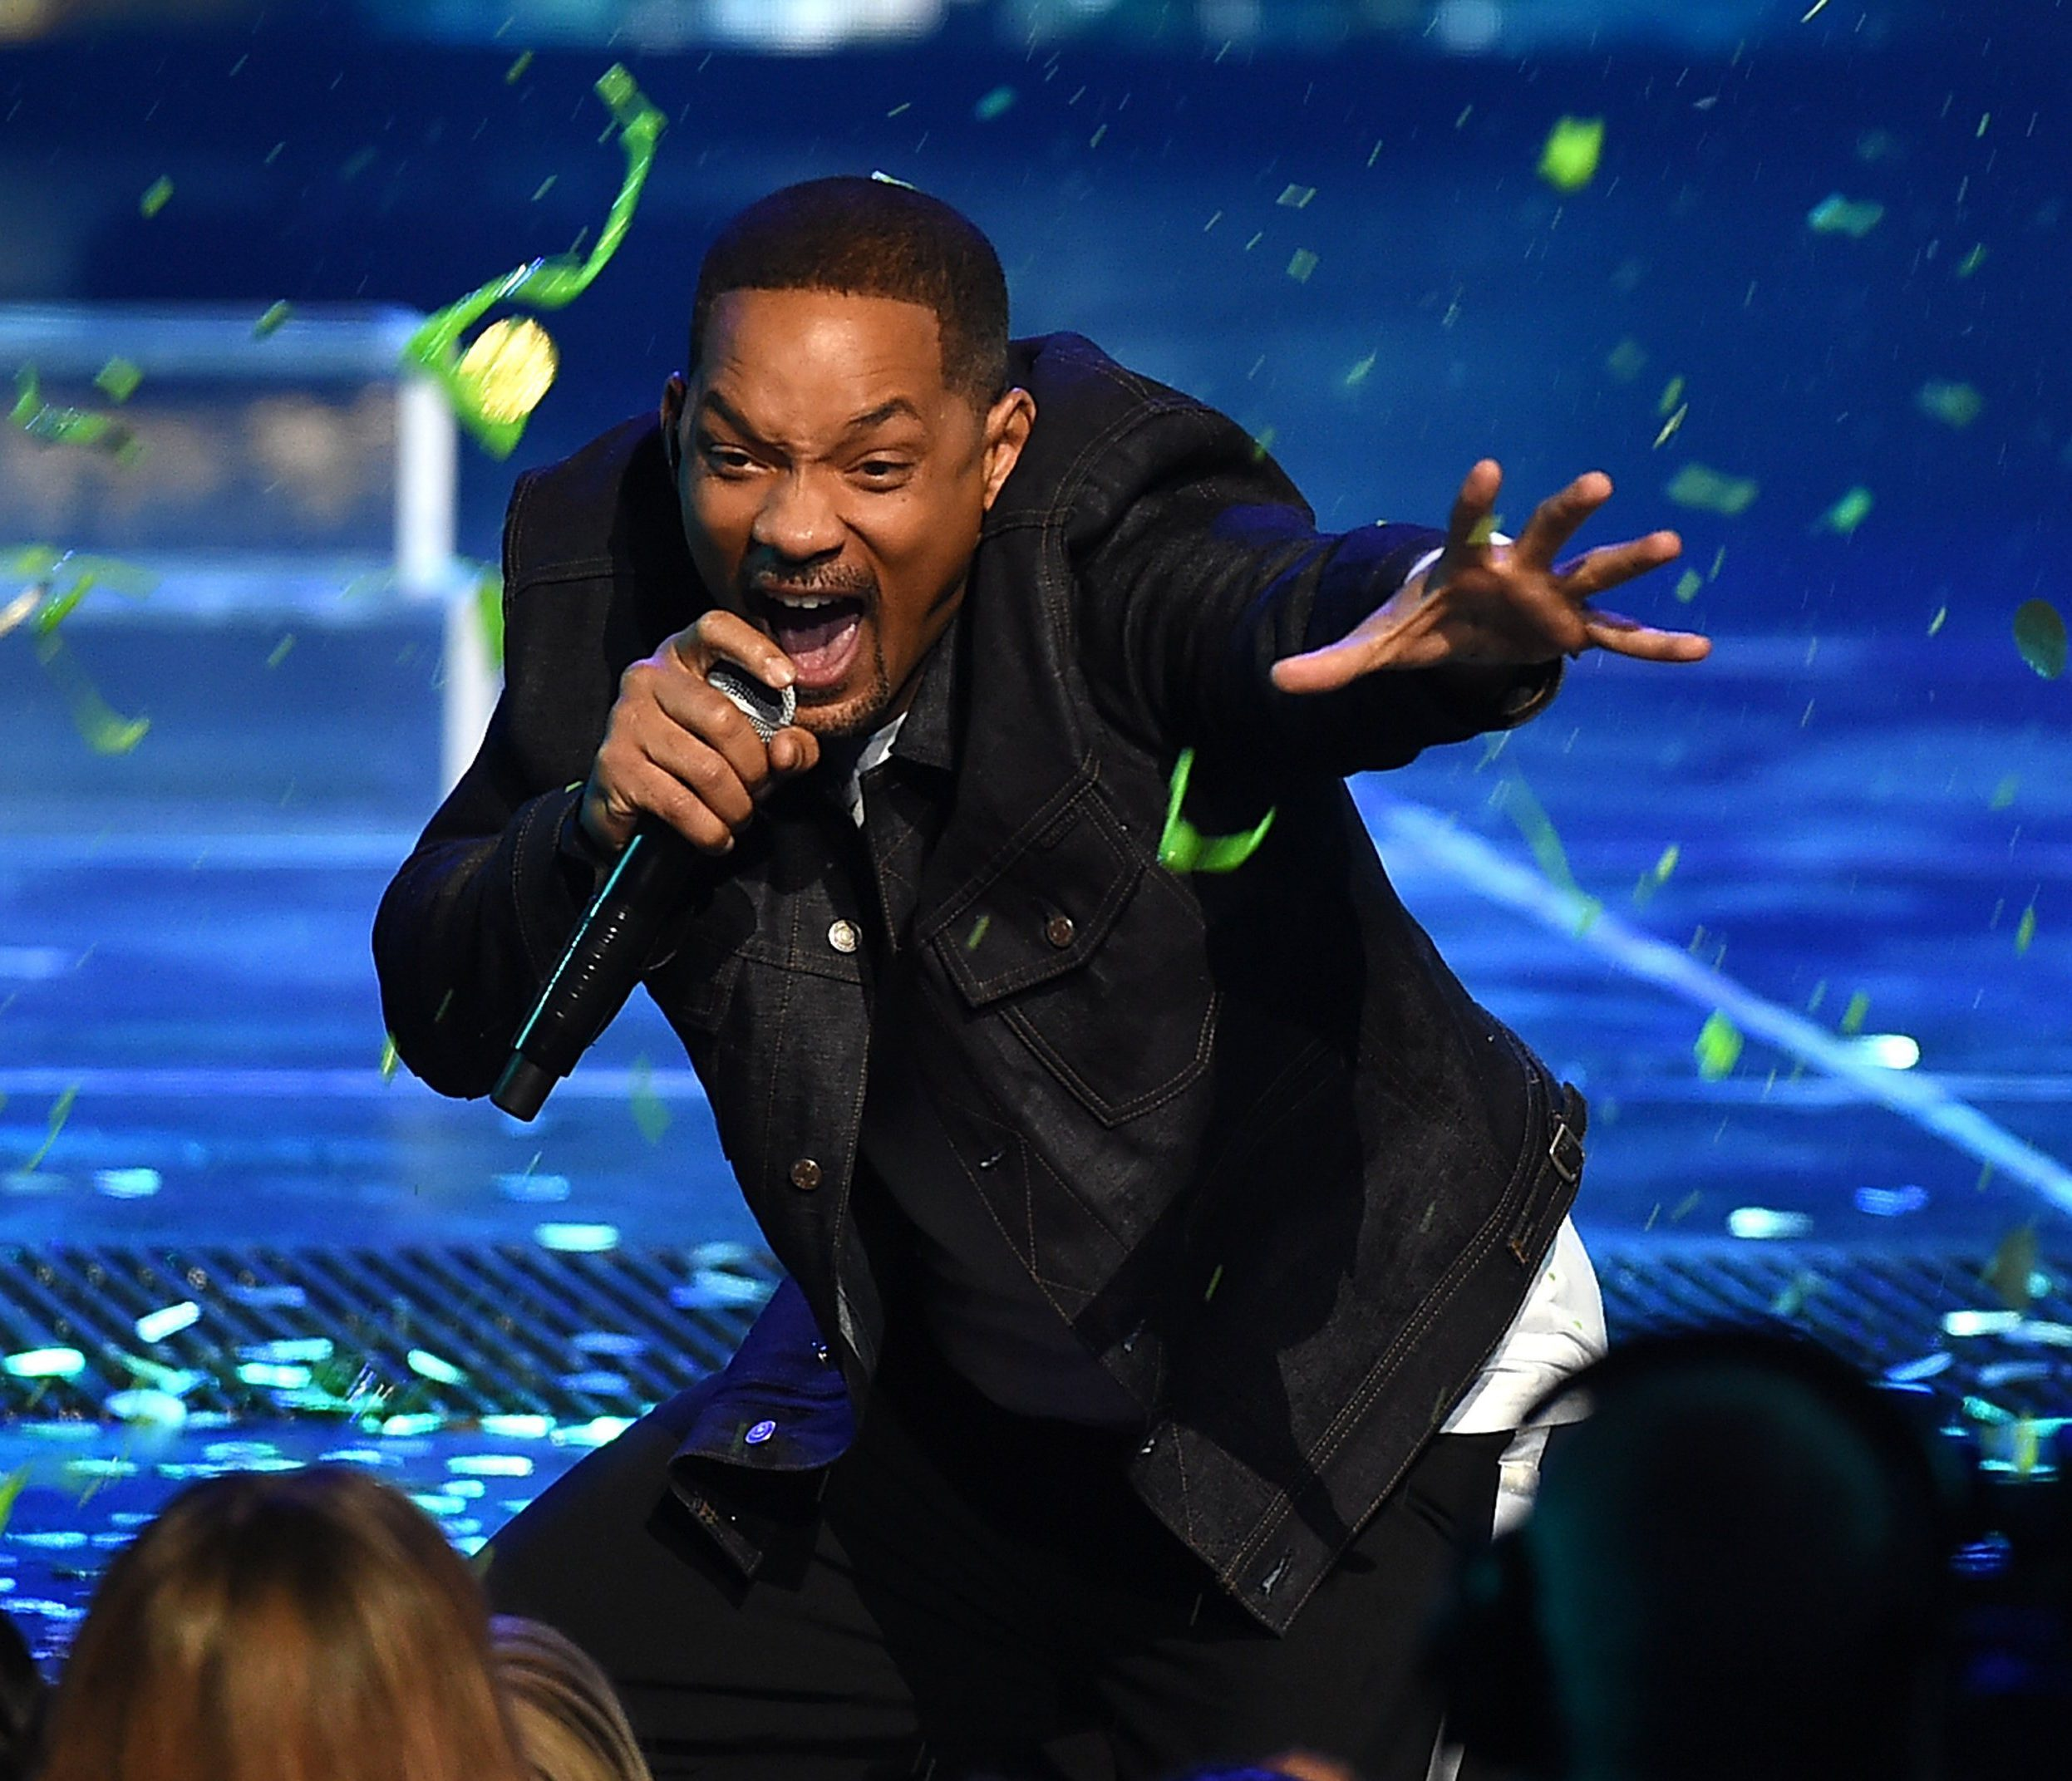 Will Smith reveals fresh Aladdin trailer at Kids' Choice Awards that everyone actually seems to like